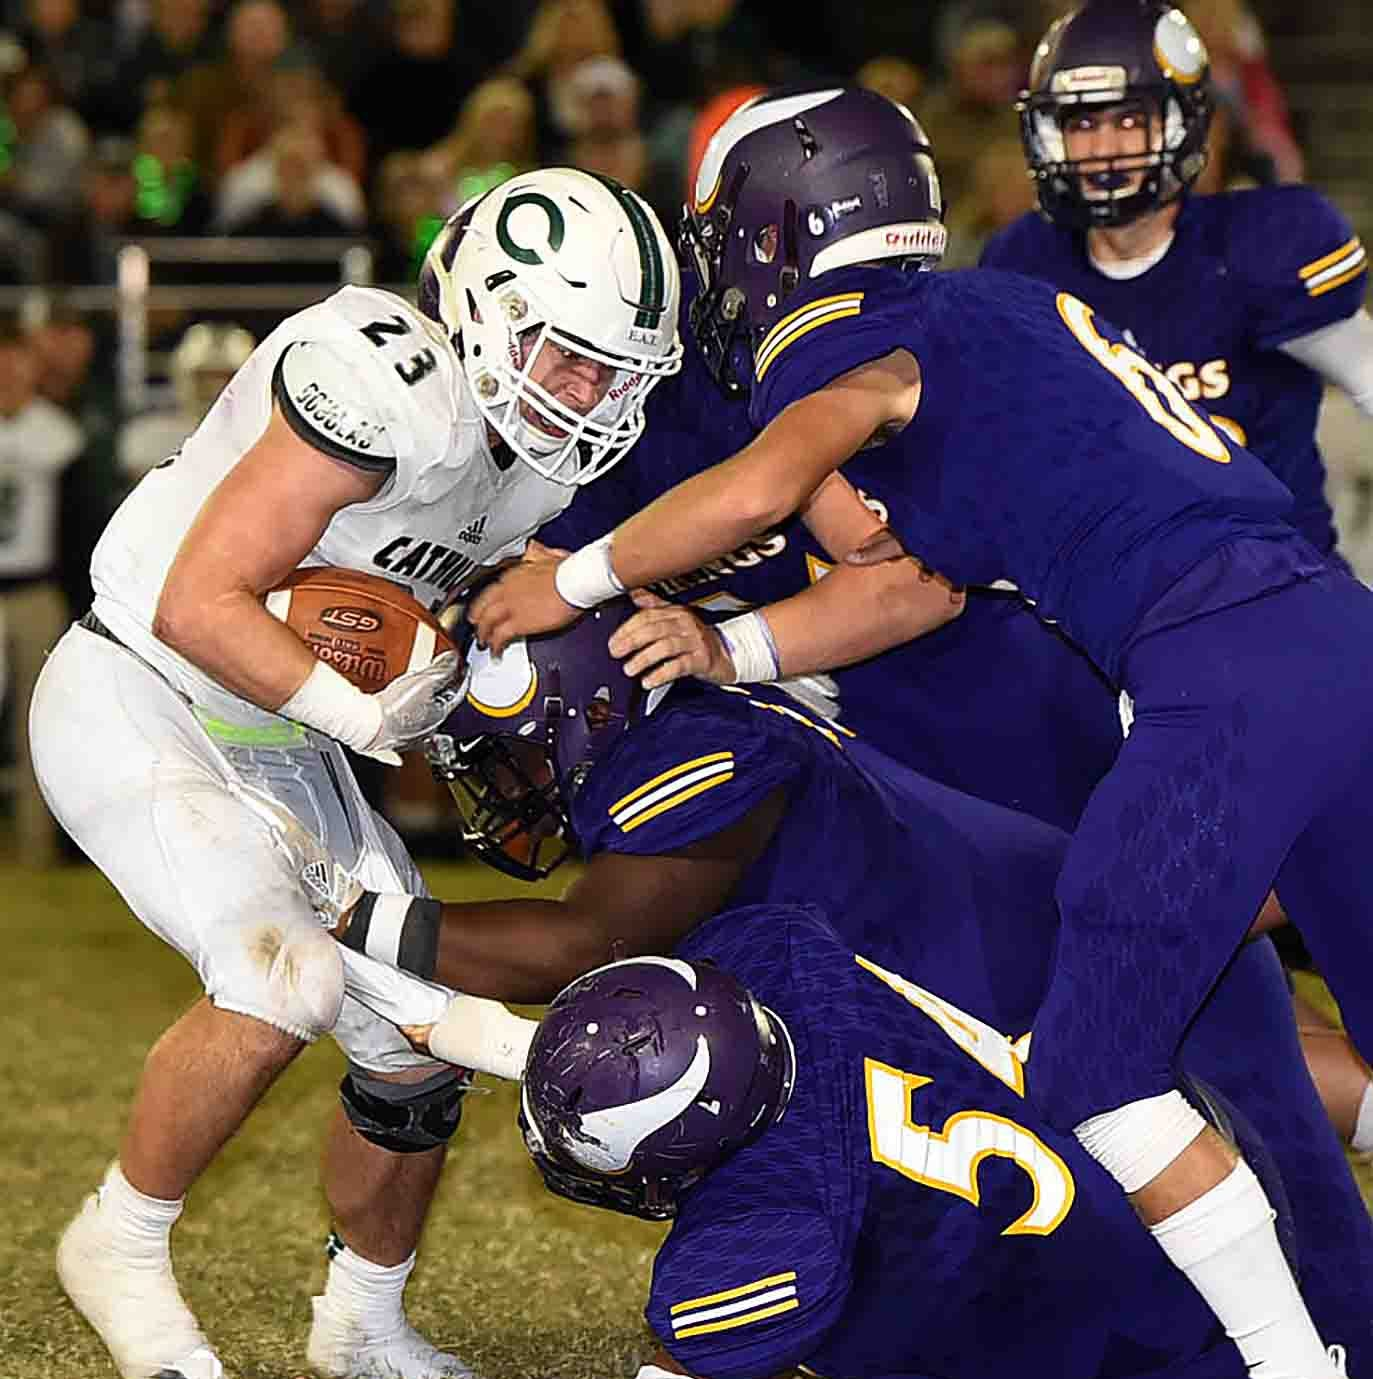 Defense comes through again for Opelousas Catholic in shutout to win district